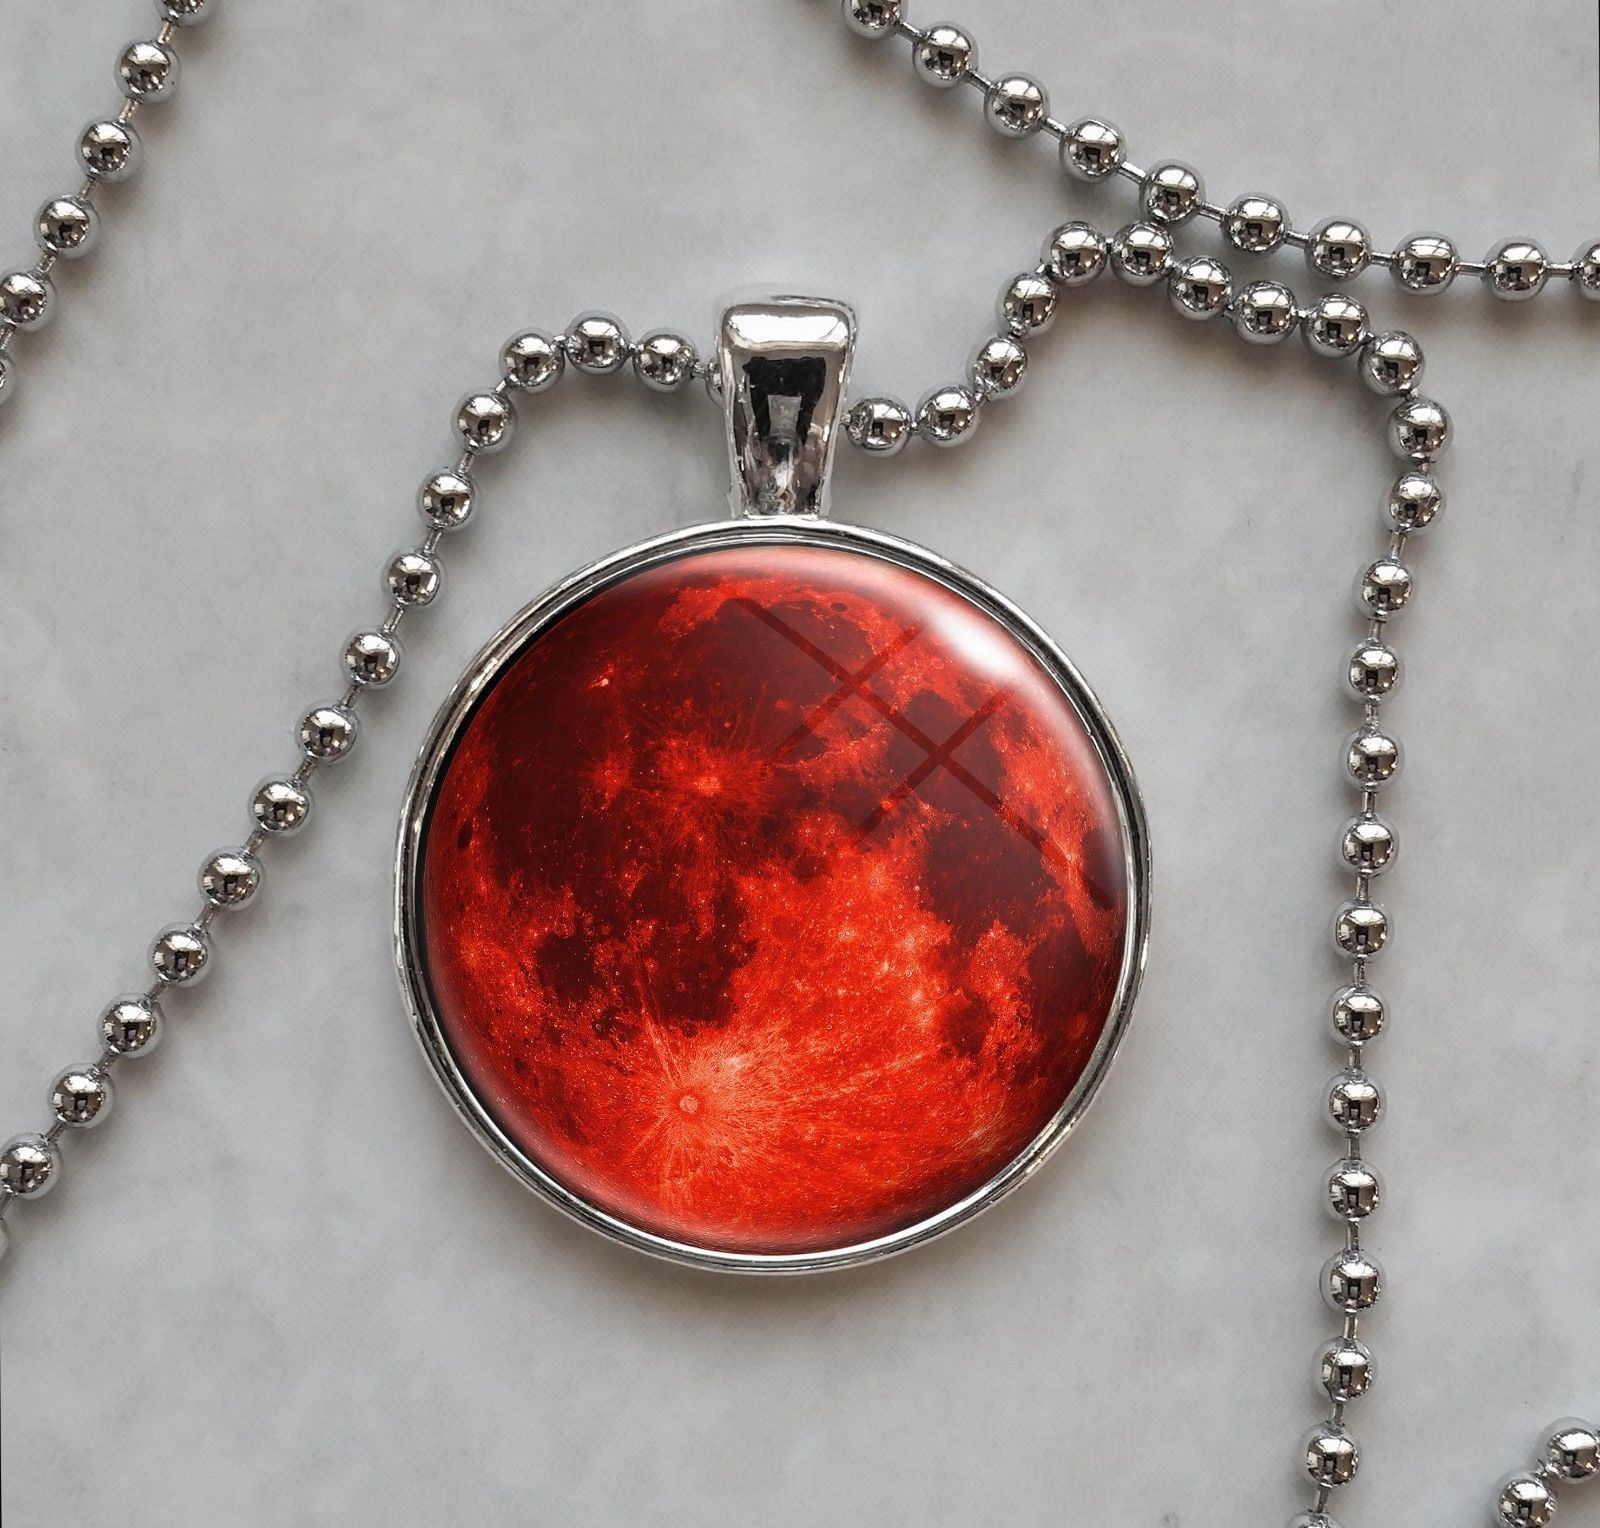 Blood Harvest Full Red Moon Pendant Necklace